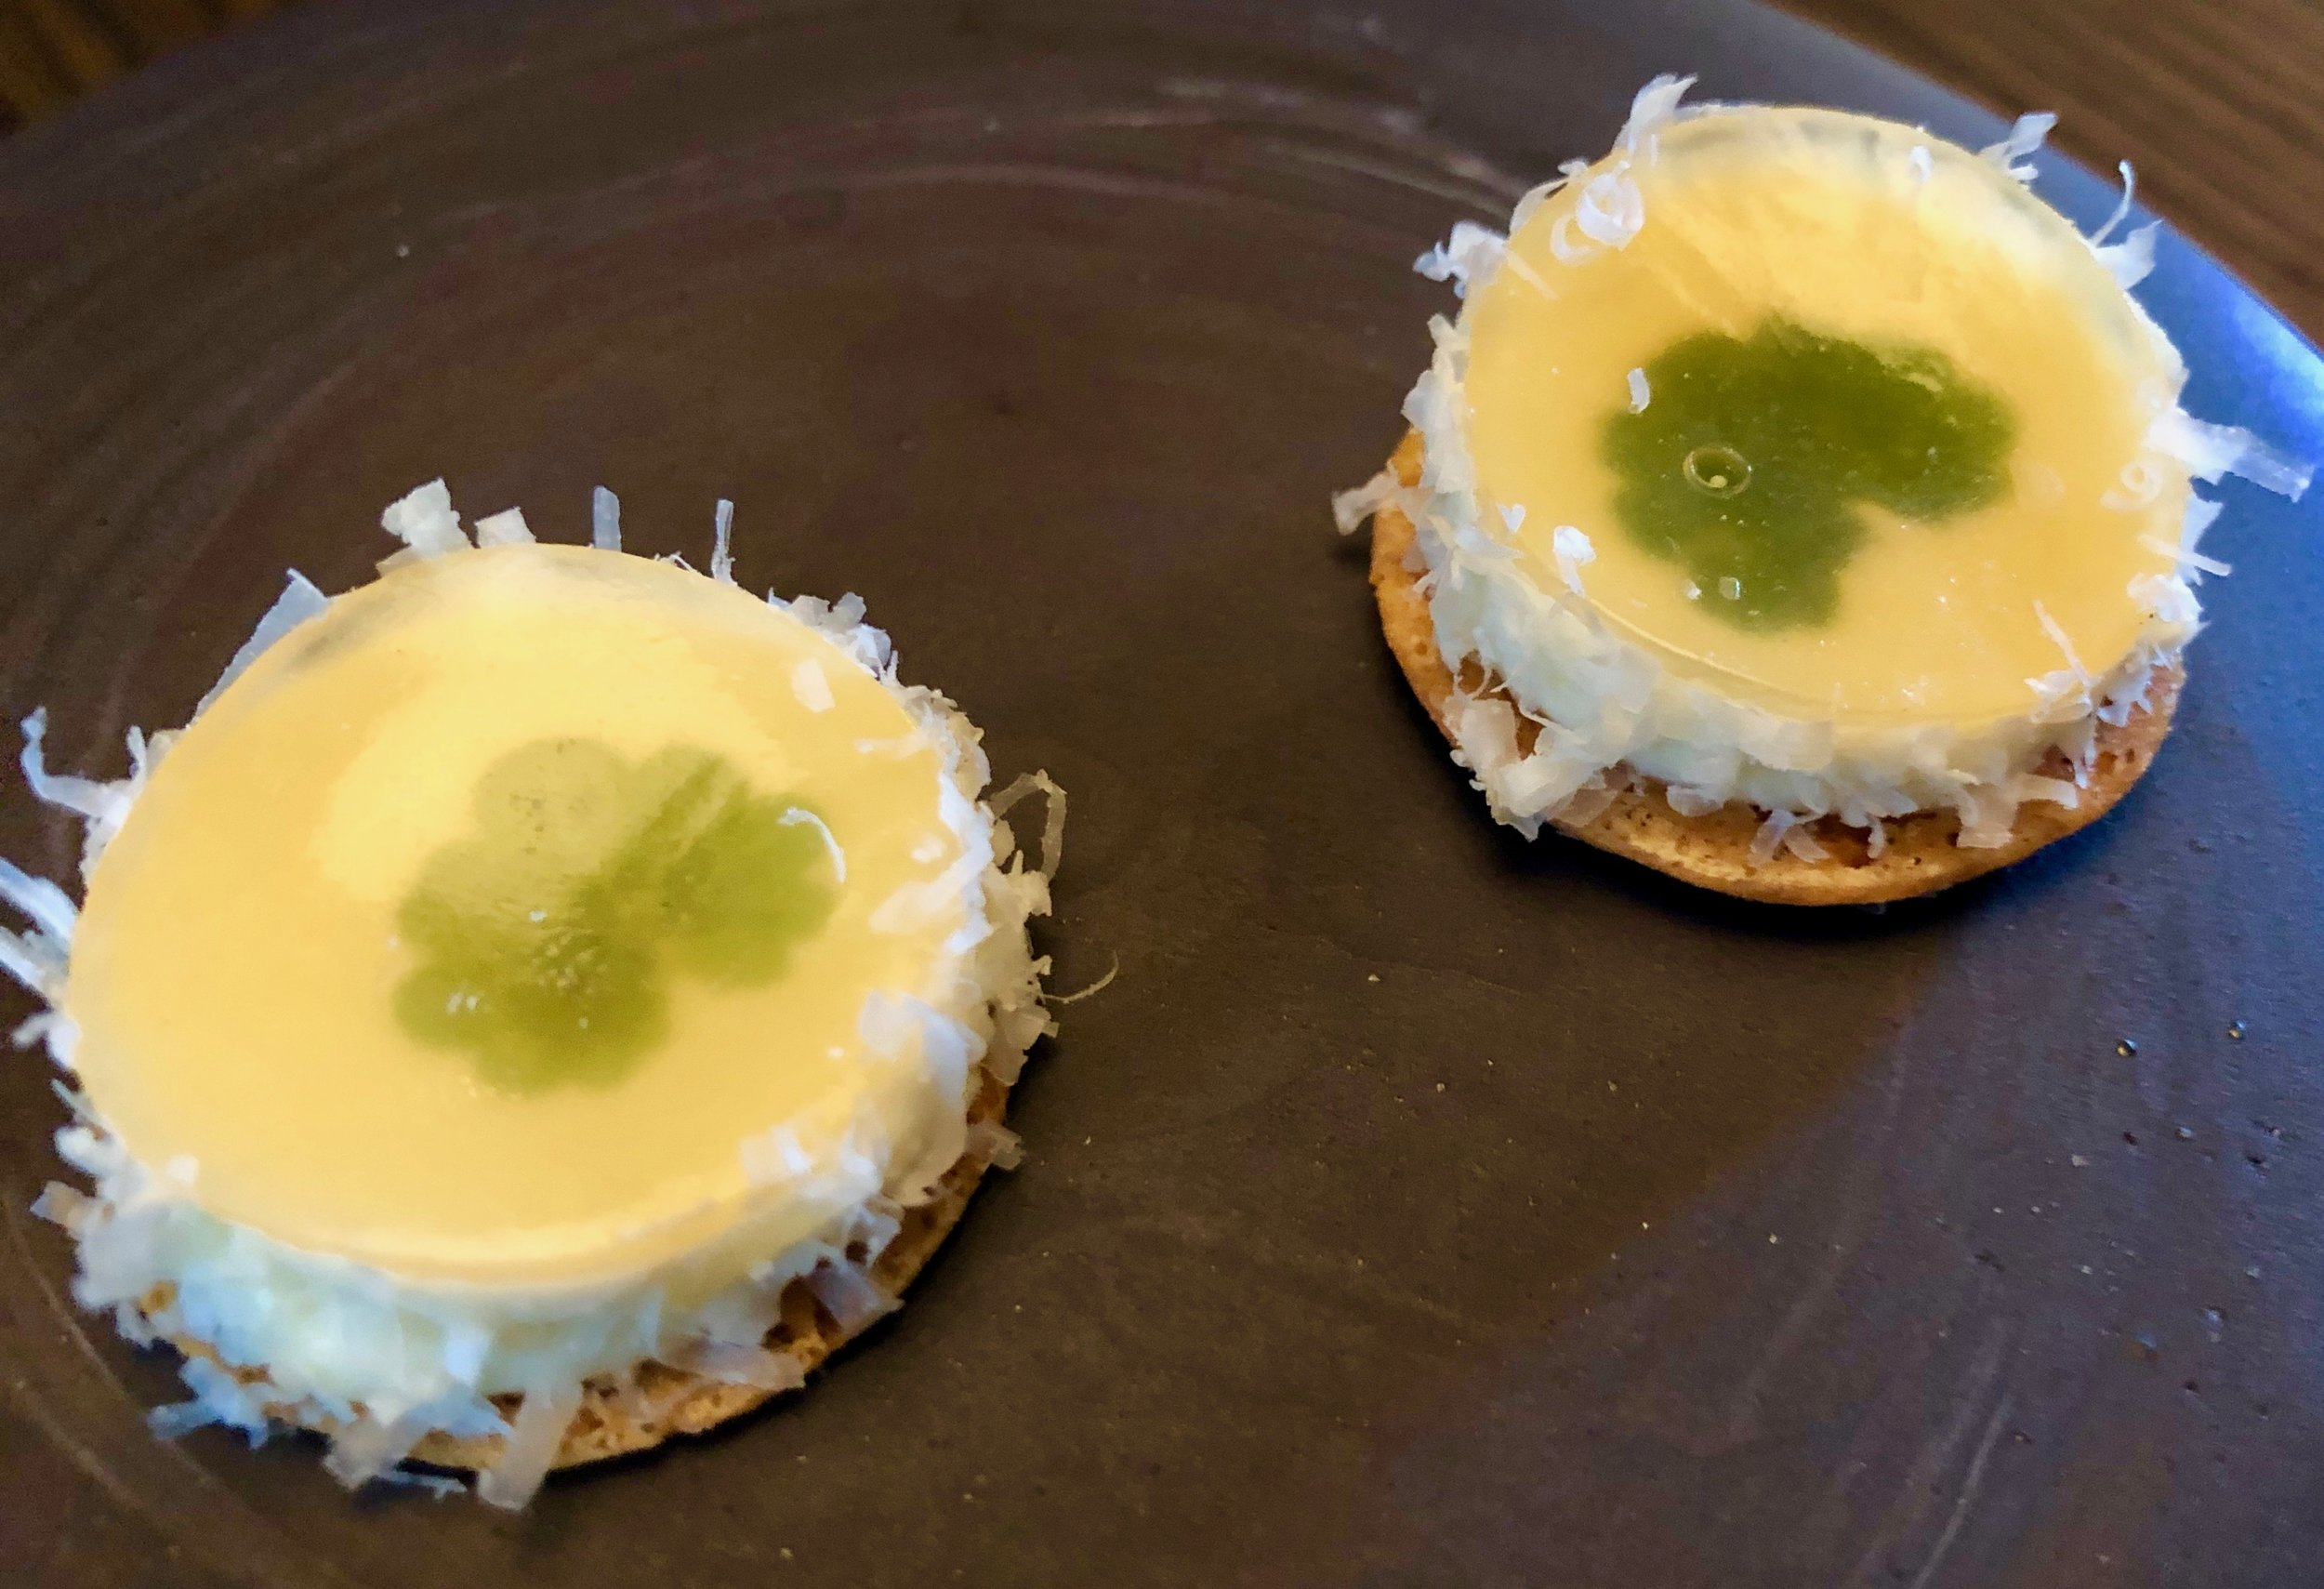 Amuse-bouche 2 – A cheesy wonder on a wafer described as Holtefjell XO from Eiker Gardsystgeri with whey of Nyr.